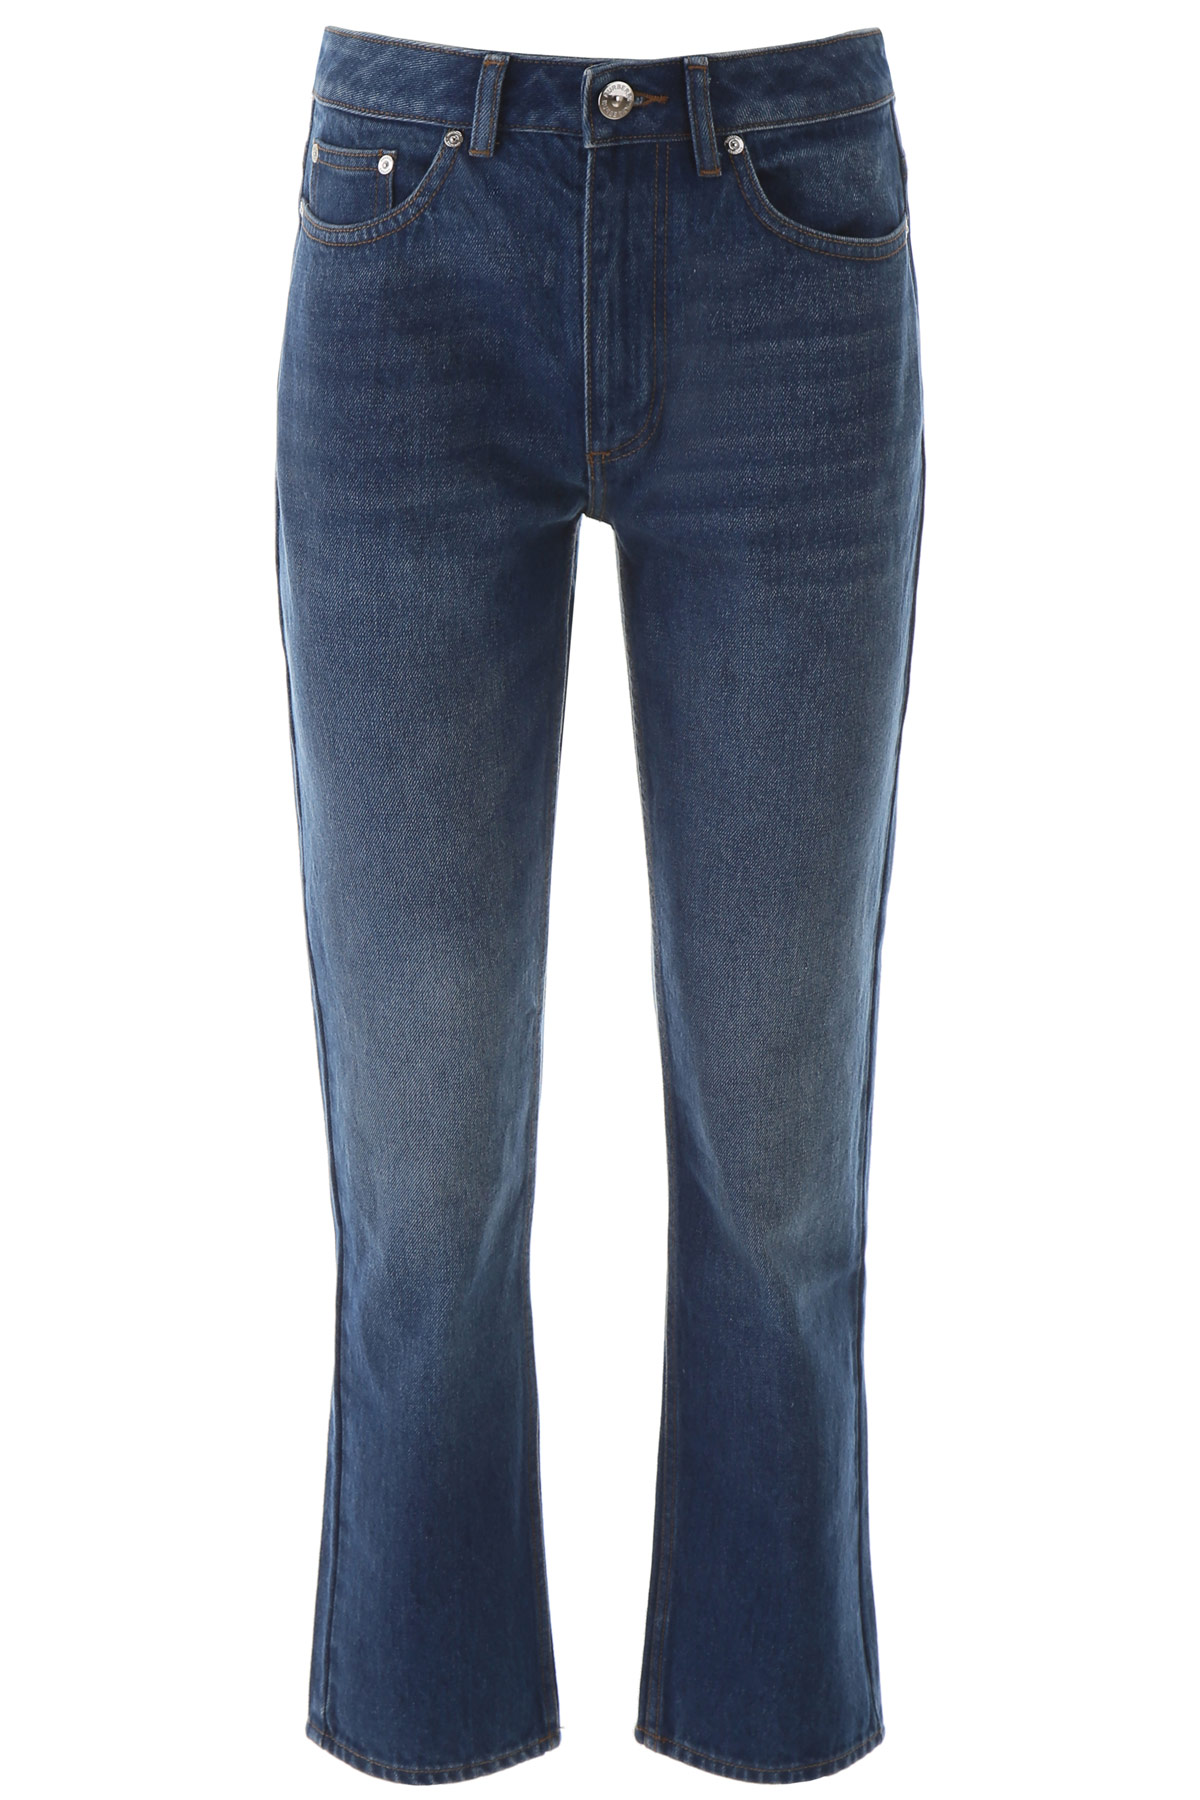 BURBERRY JEANS WITH CHAIN 25 Blue Cotton, Denim